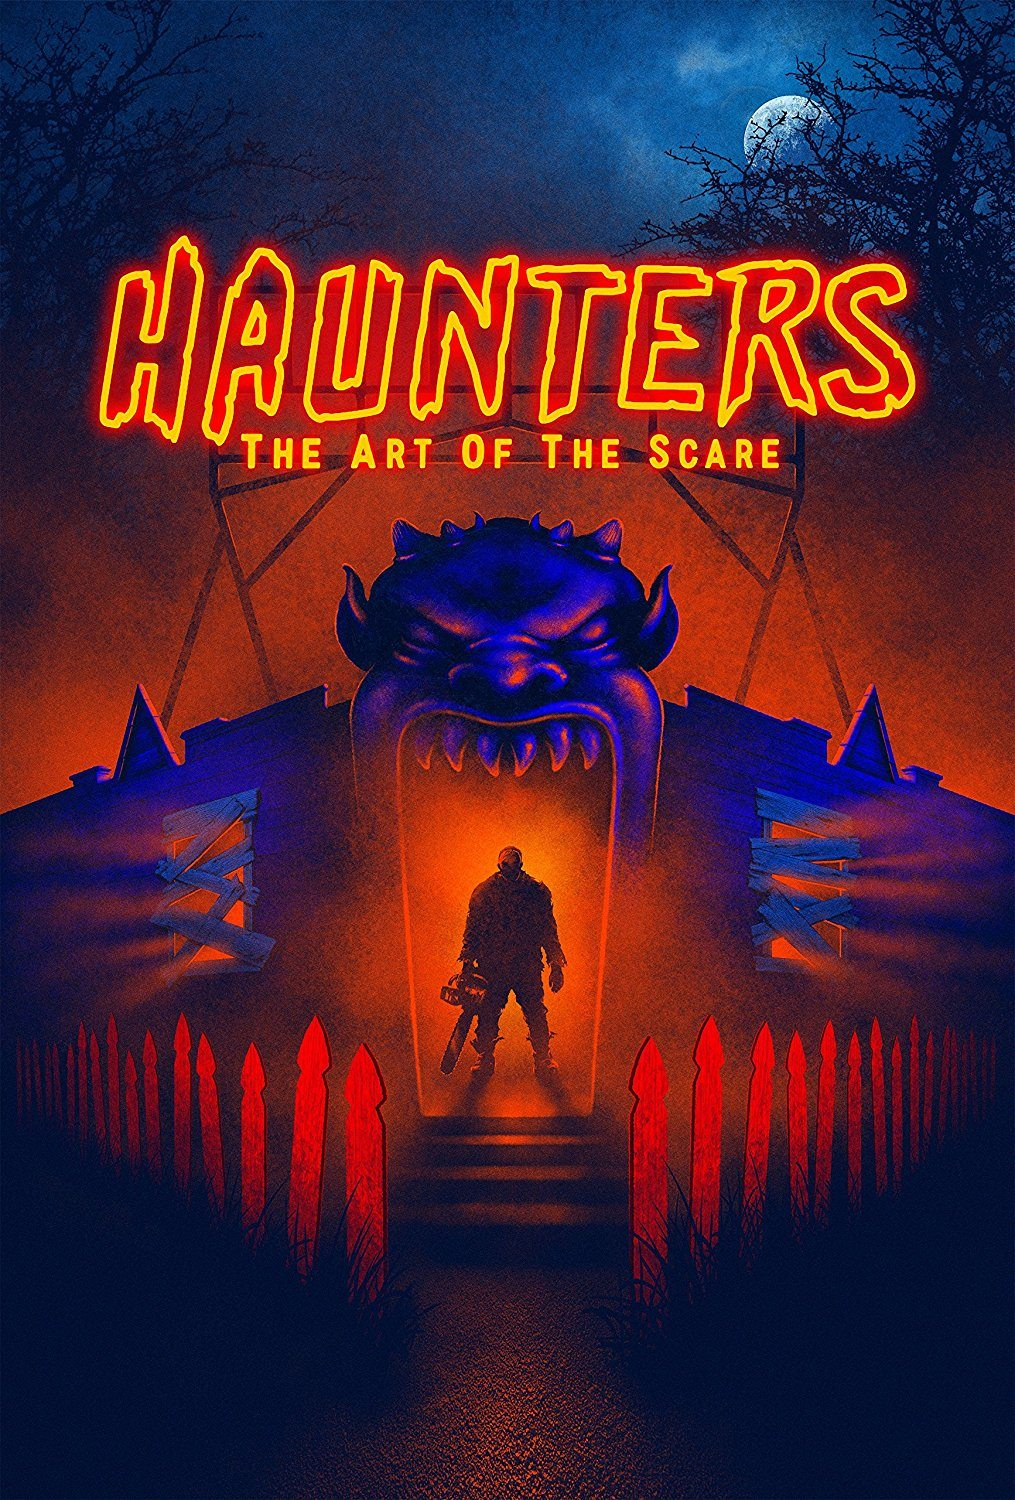 haunters blu ray - Video Interview: Jon Schnitzer and Shar Mayer Discuss Haunters: The Art of the Scare